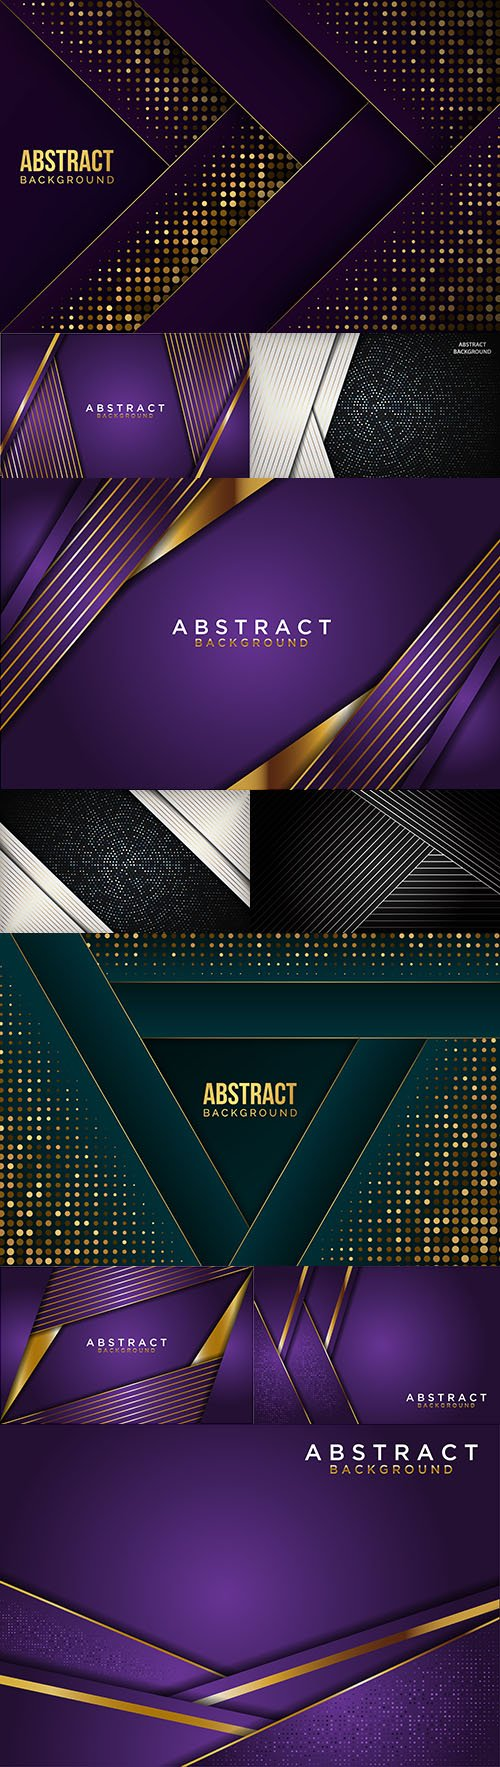 Abstract background and gold line design decorative element